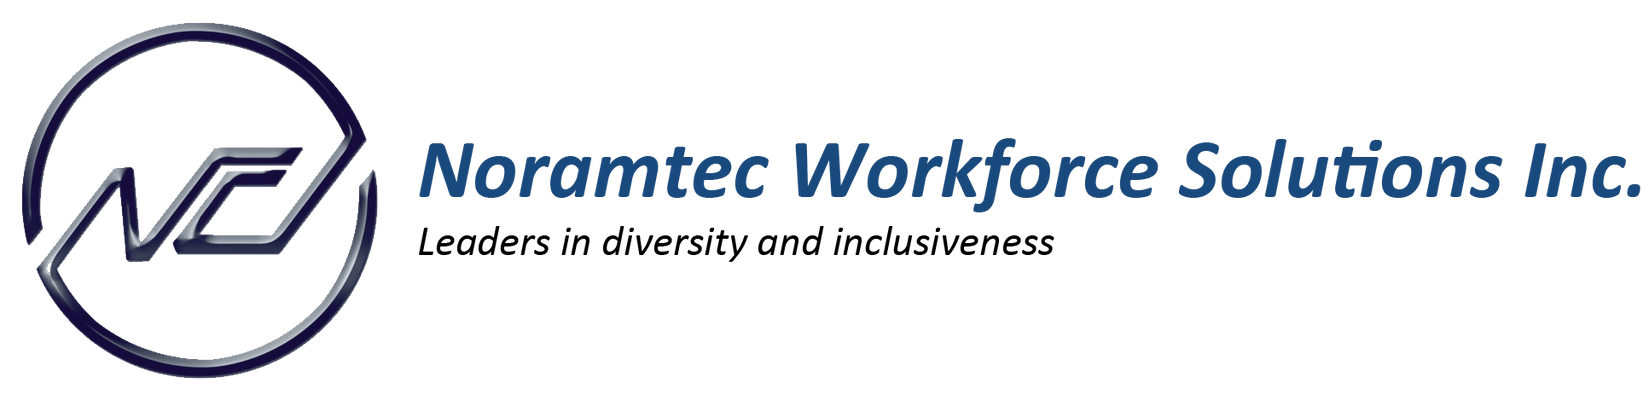 Noramtec Workforce Solutions